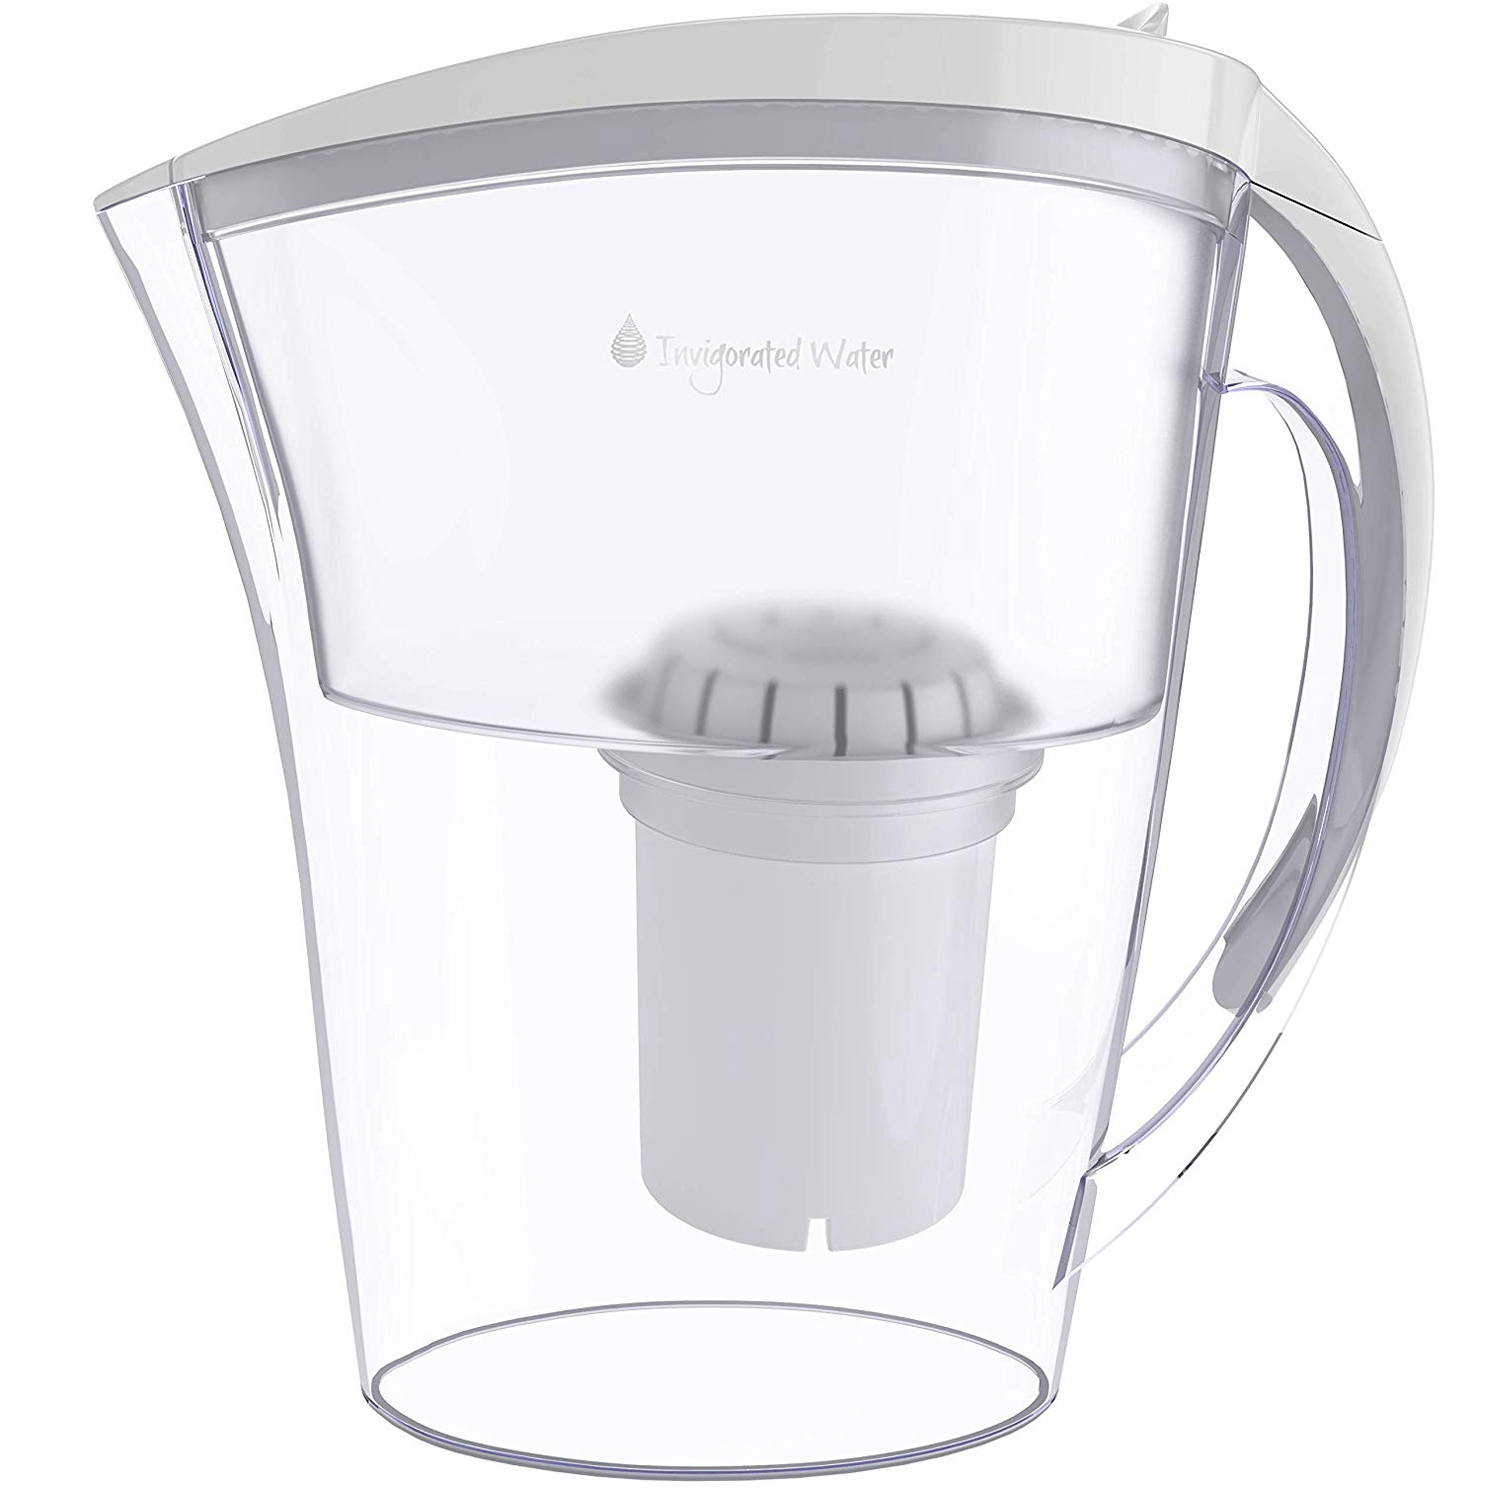 Kettle With Long Life Filter - Alkaline Water Filter Purifier - Water Filtration System - High Ph Ion Alkaline Water Machine 3